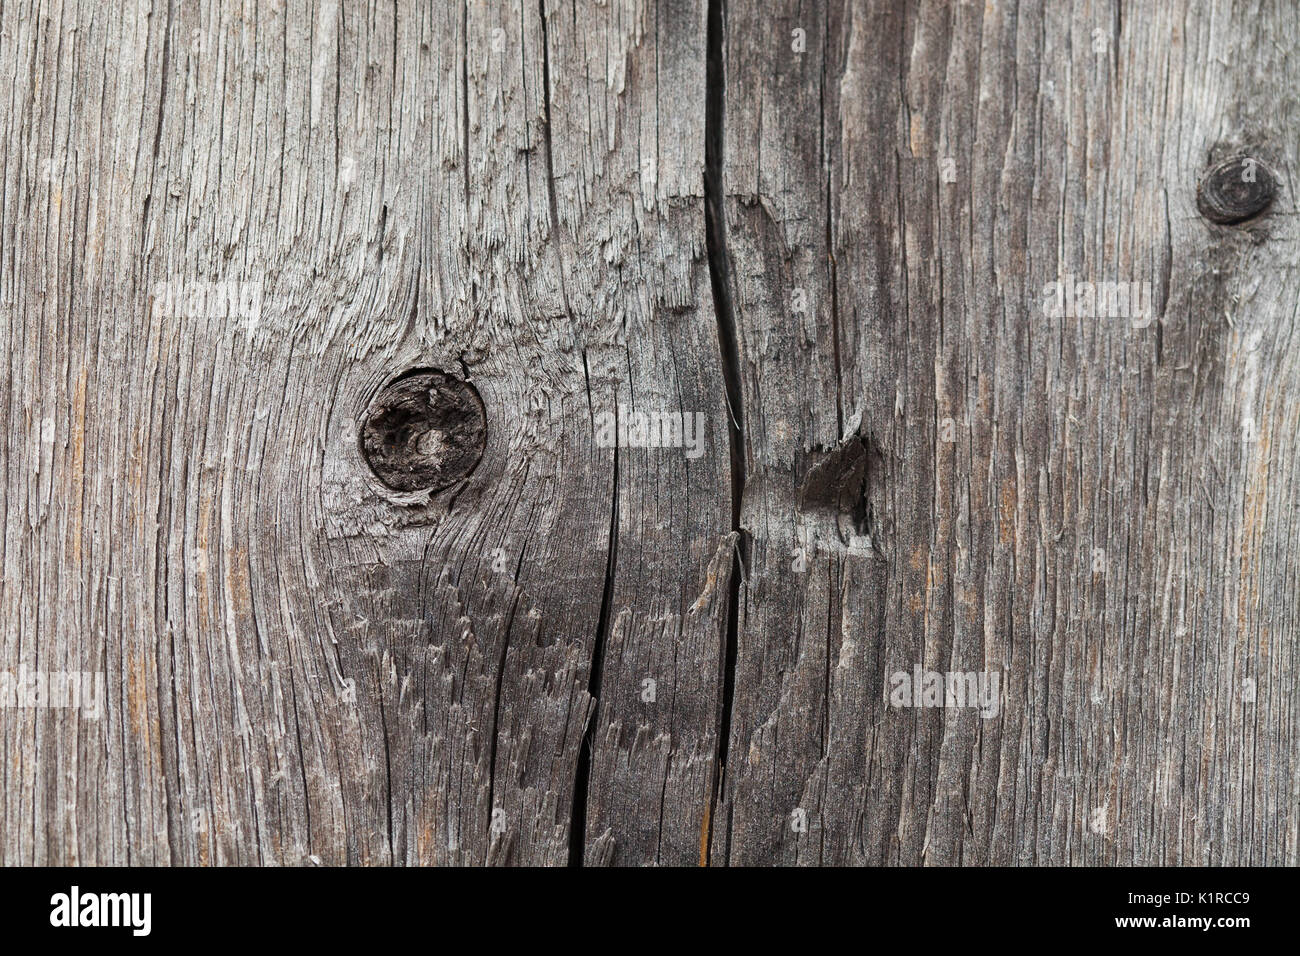 Vintage wood texture. aged floor with knots, cracks, fractures. Macro view. - Stock Image